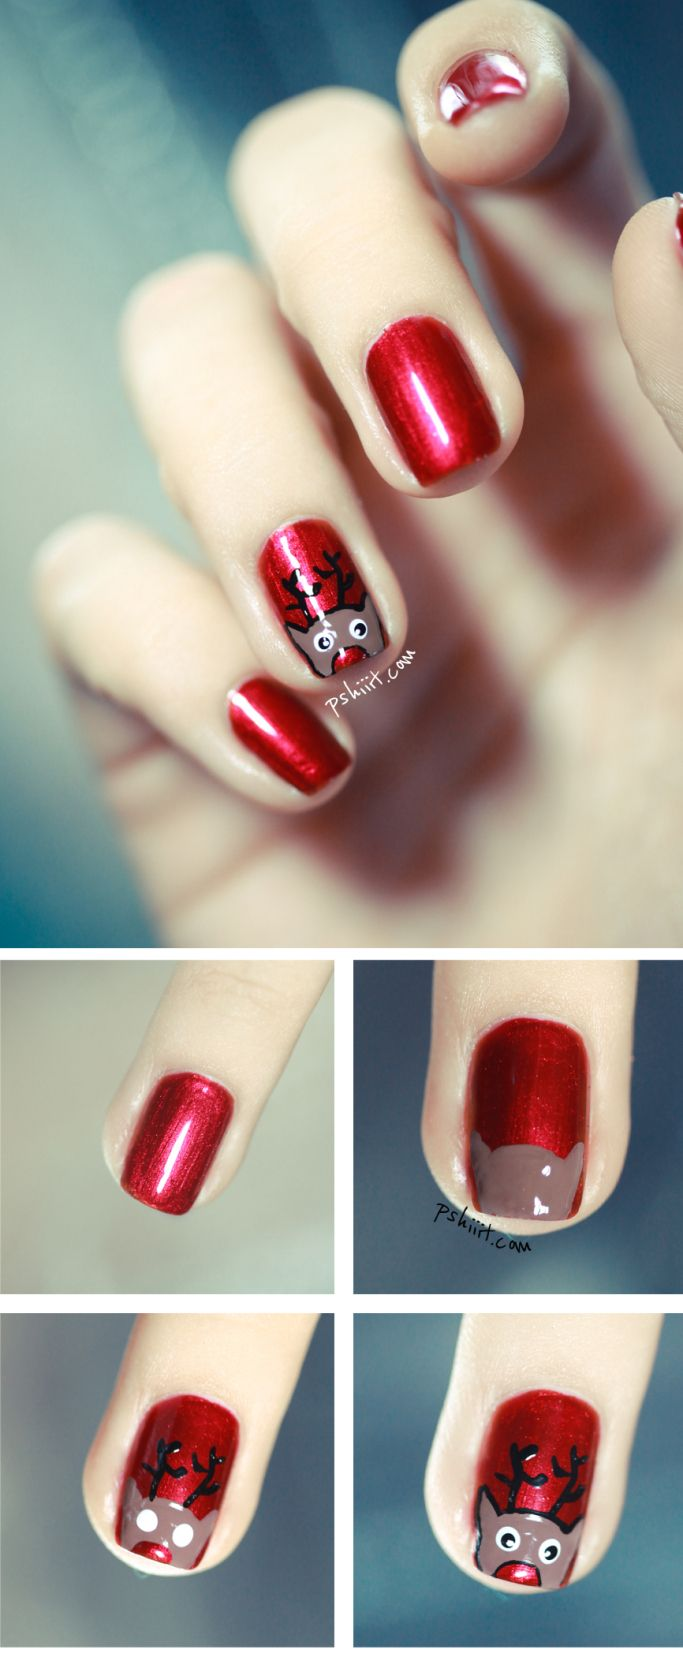 Rudolph the red nose nails